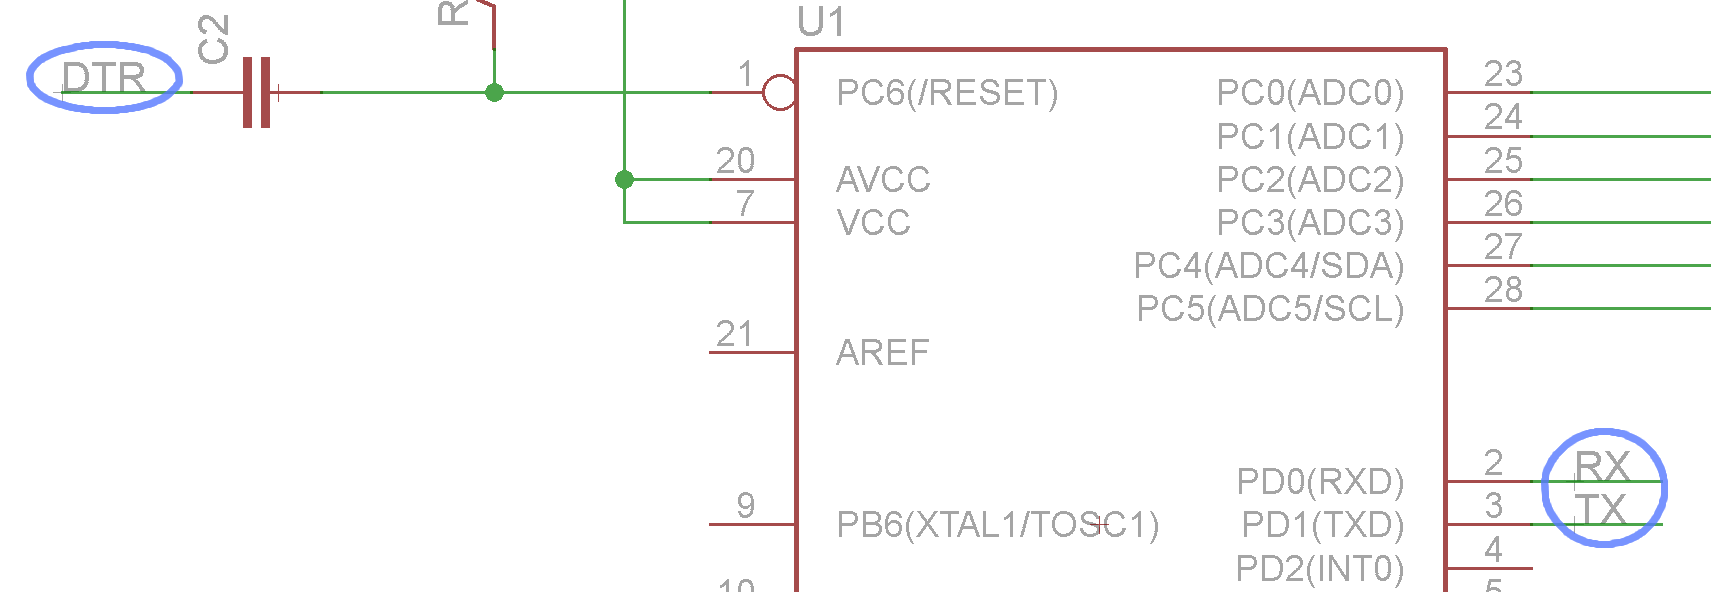 Using Eagle Schematic Symbols For Autocad Get Free Image About Wiring Diagram Naming And Labeling Rx Tx Dtr